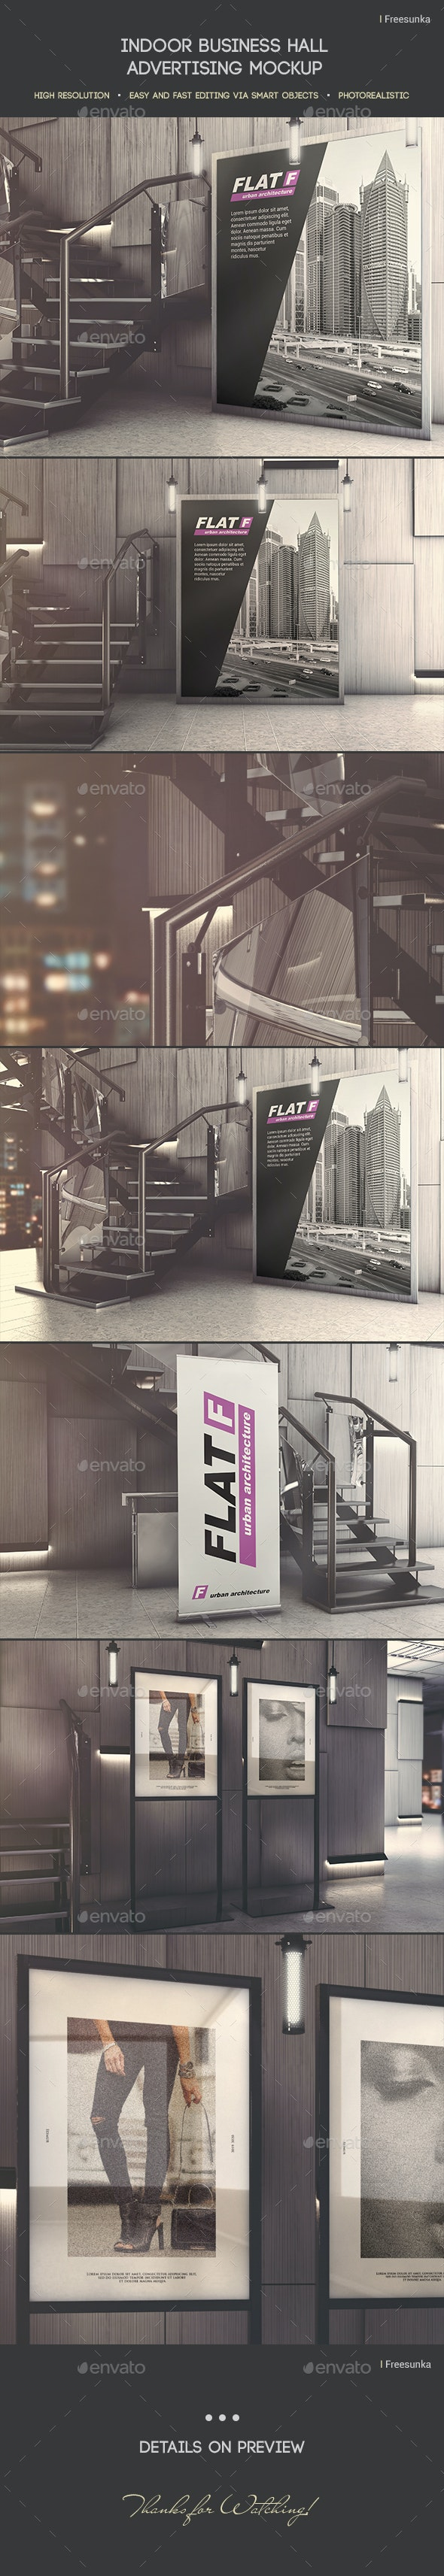 Indoor Business Hall Advertising Mockup - Miscellaneous Print